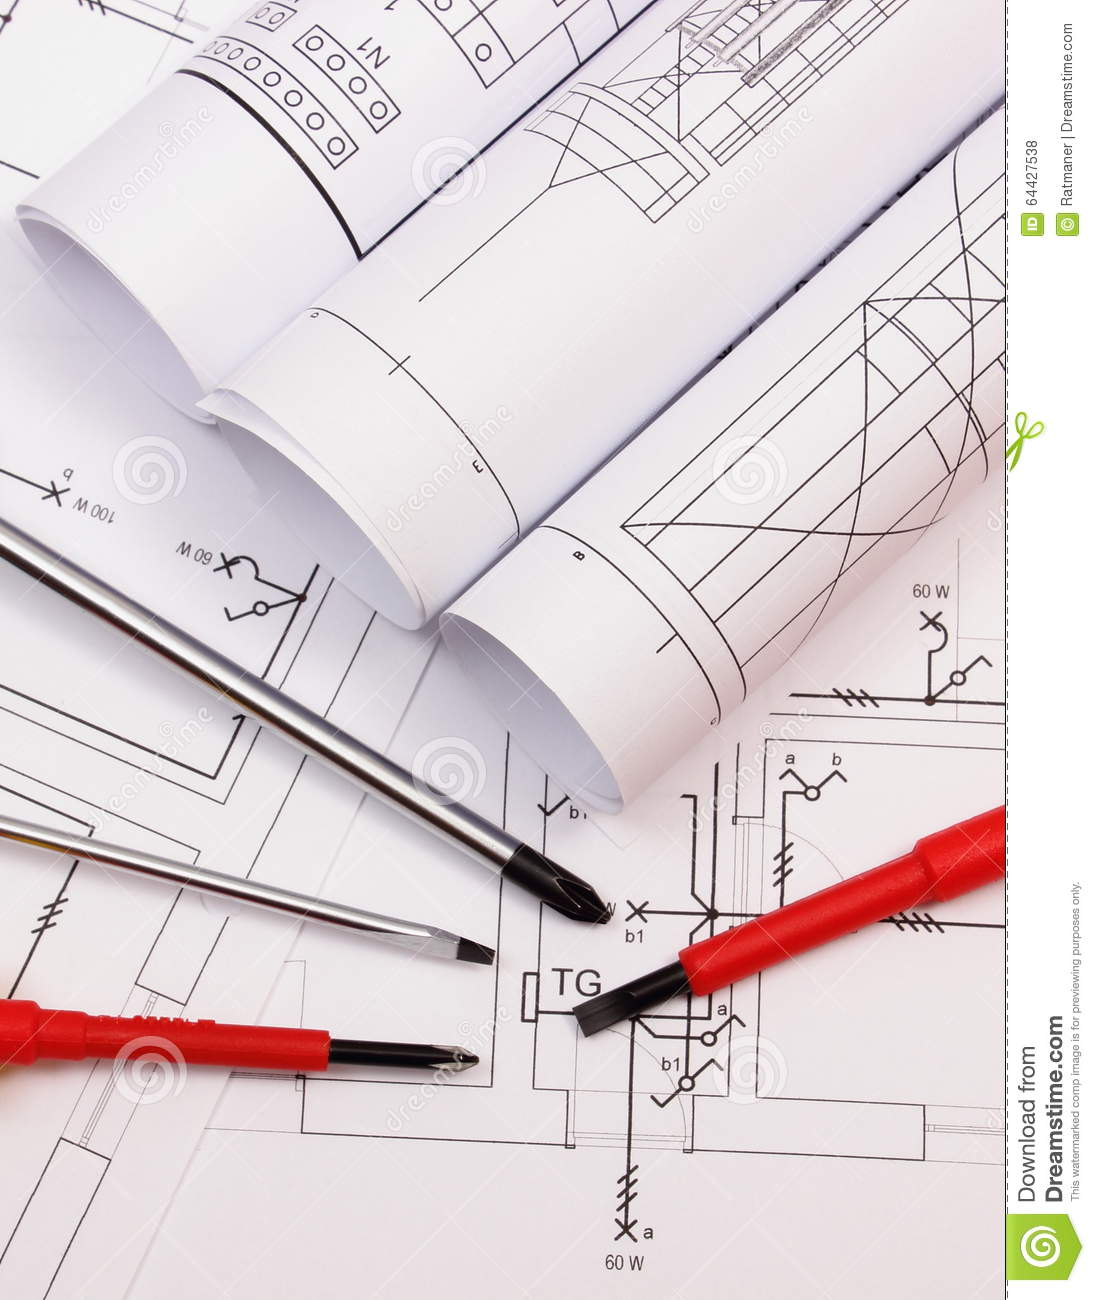 Rolls Of Diagrams And Work Tools On Electrical Construction Drawing In House